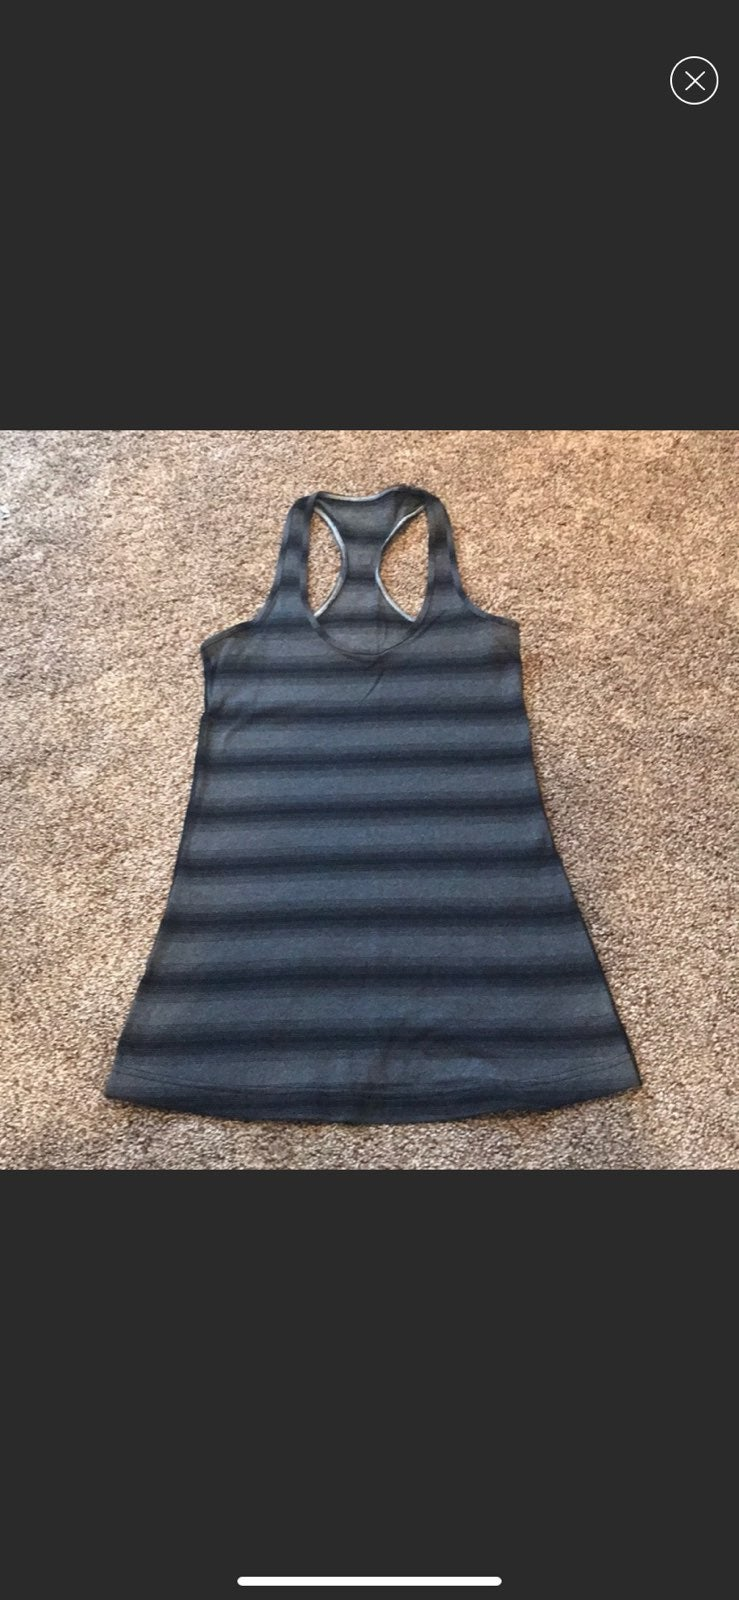 Lululemon CRB in Black and Gray Size 4.